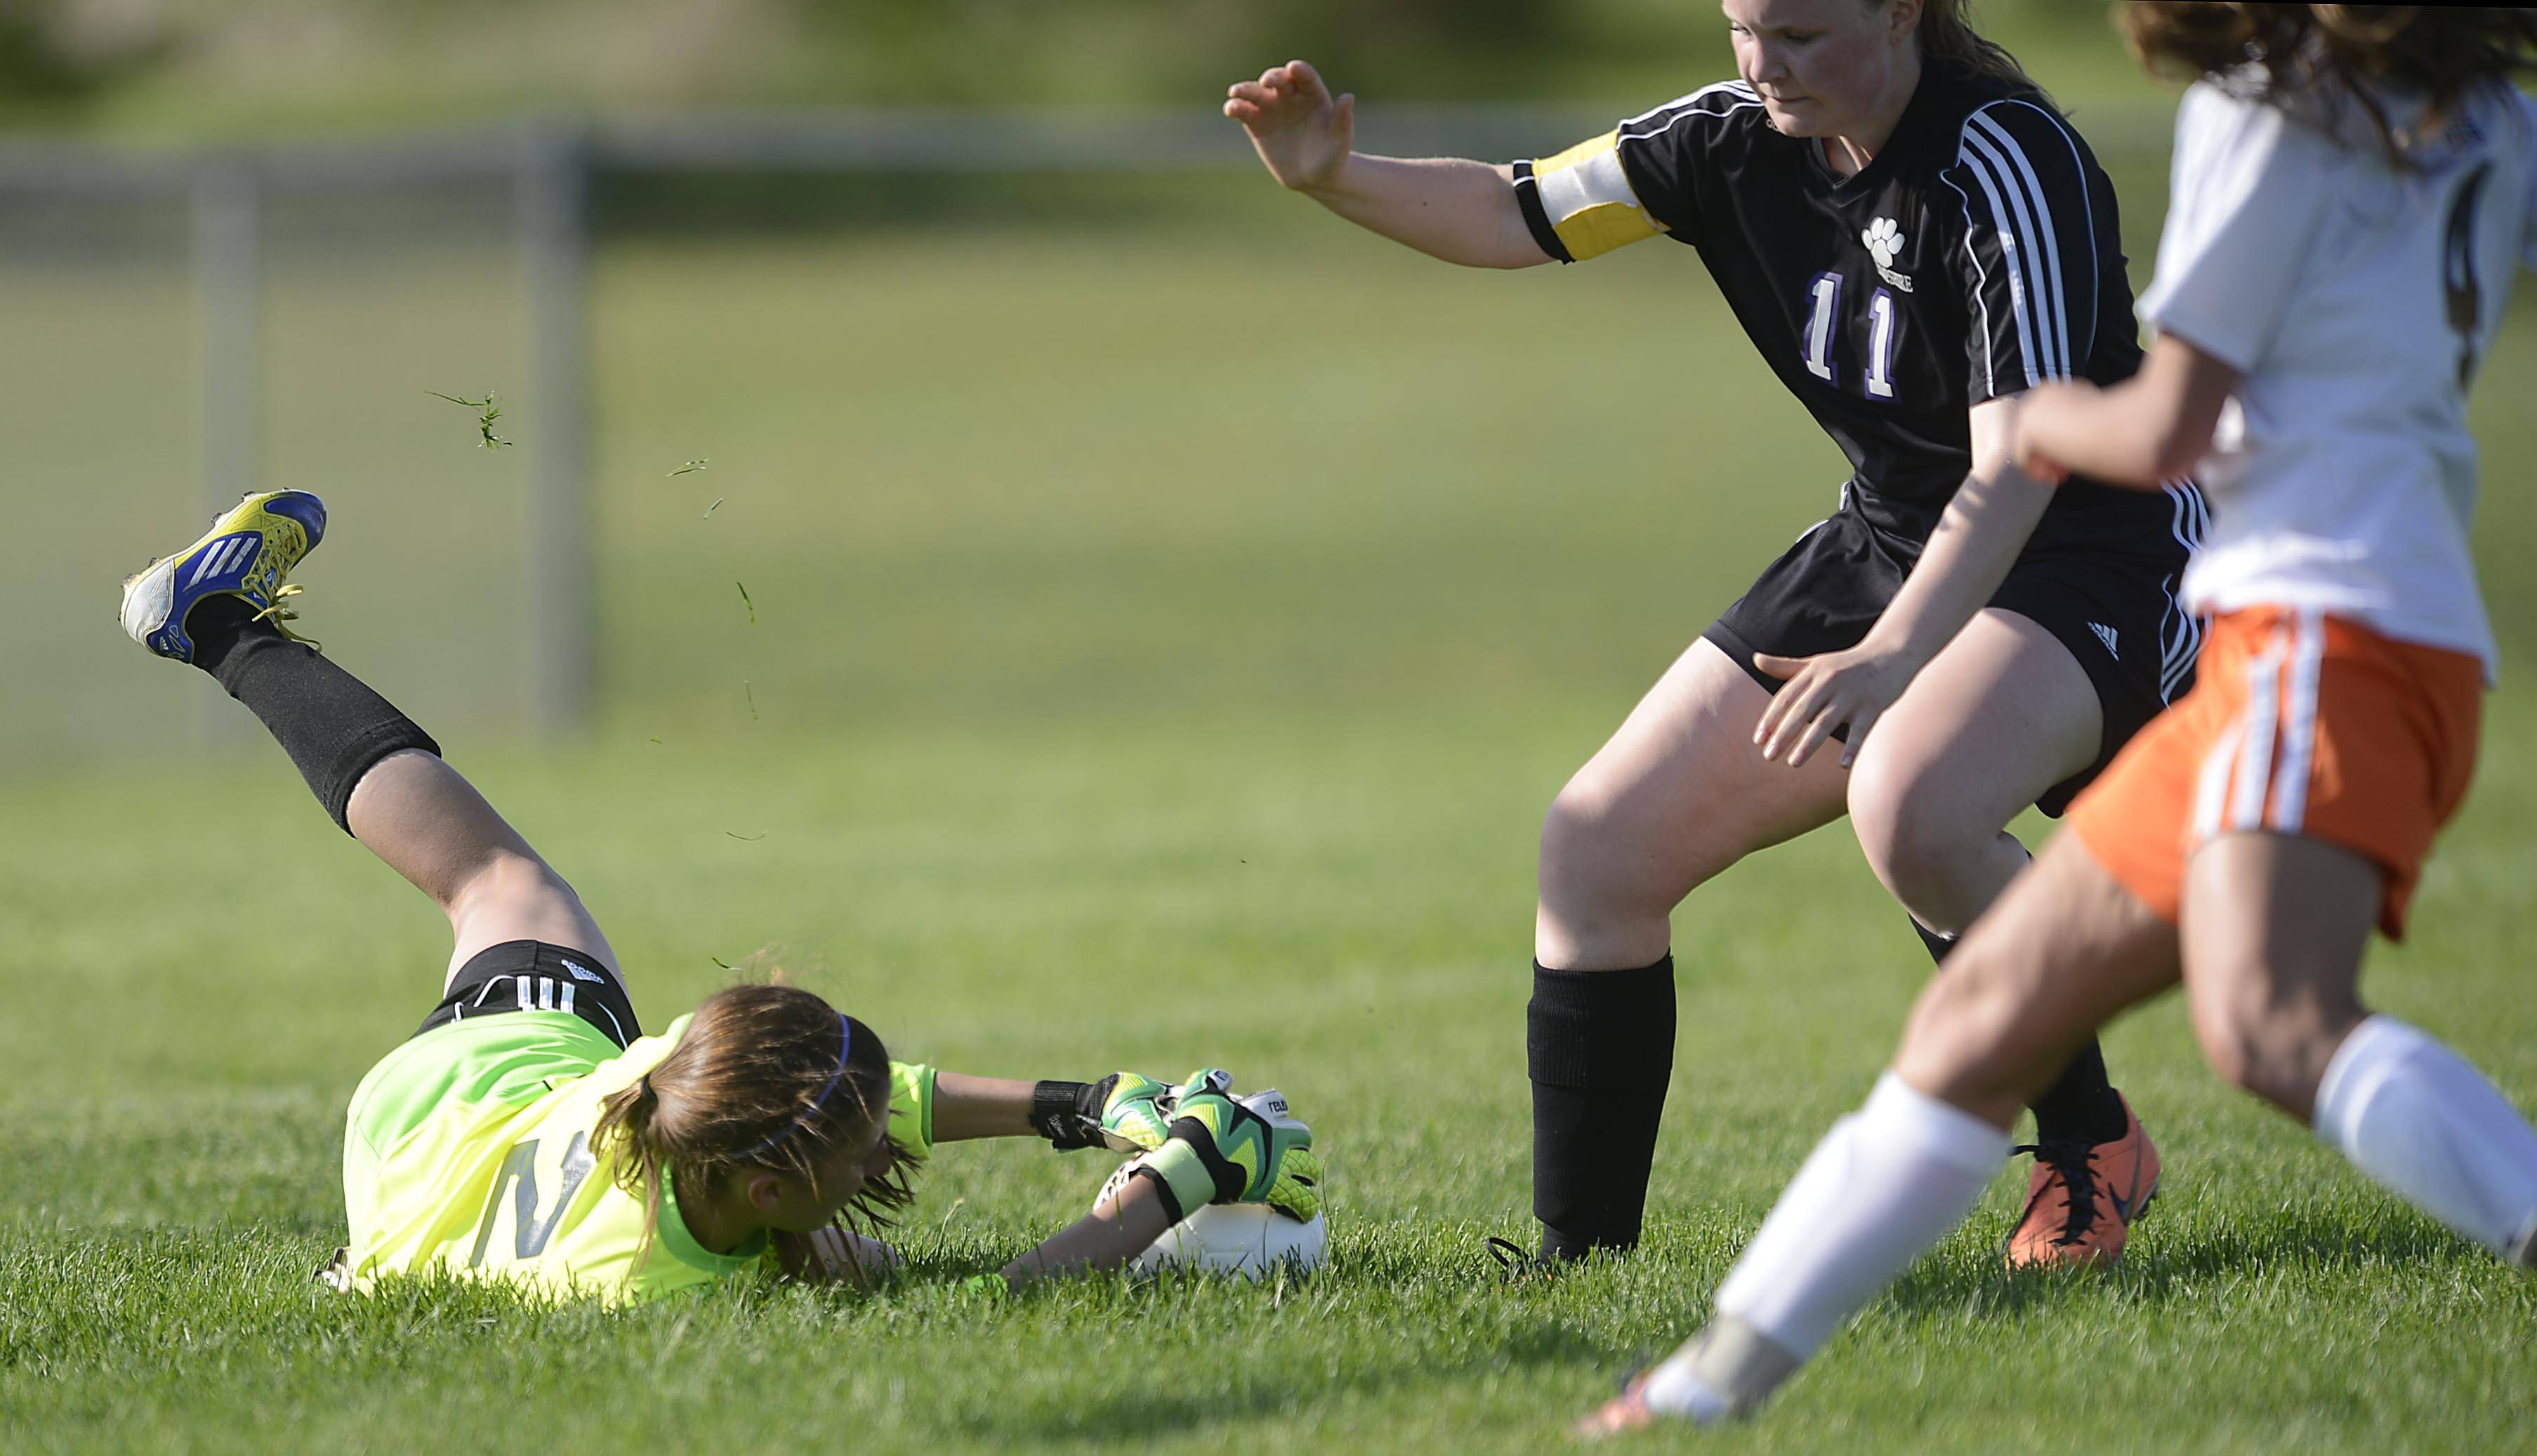 John Starks/jstarks@dailyherald.comHampshire goalkeeper Kaila Kienzler makes a stop as teammate McCall Rafferty blocks DeKalb's Morgan Beaty Wednesday in the Class 2A Burlington Central regional game.